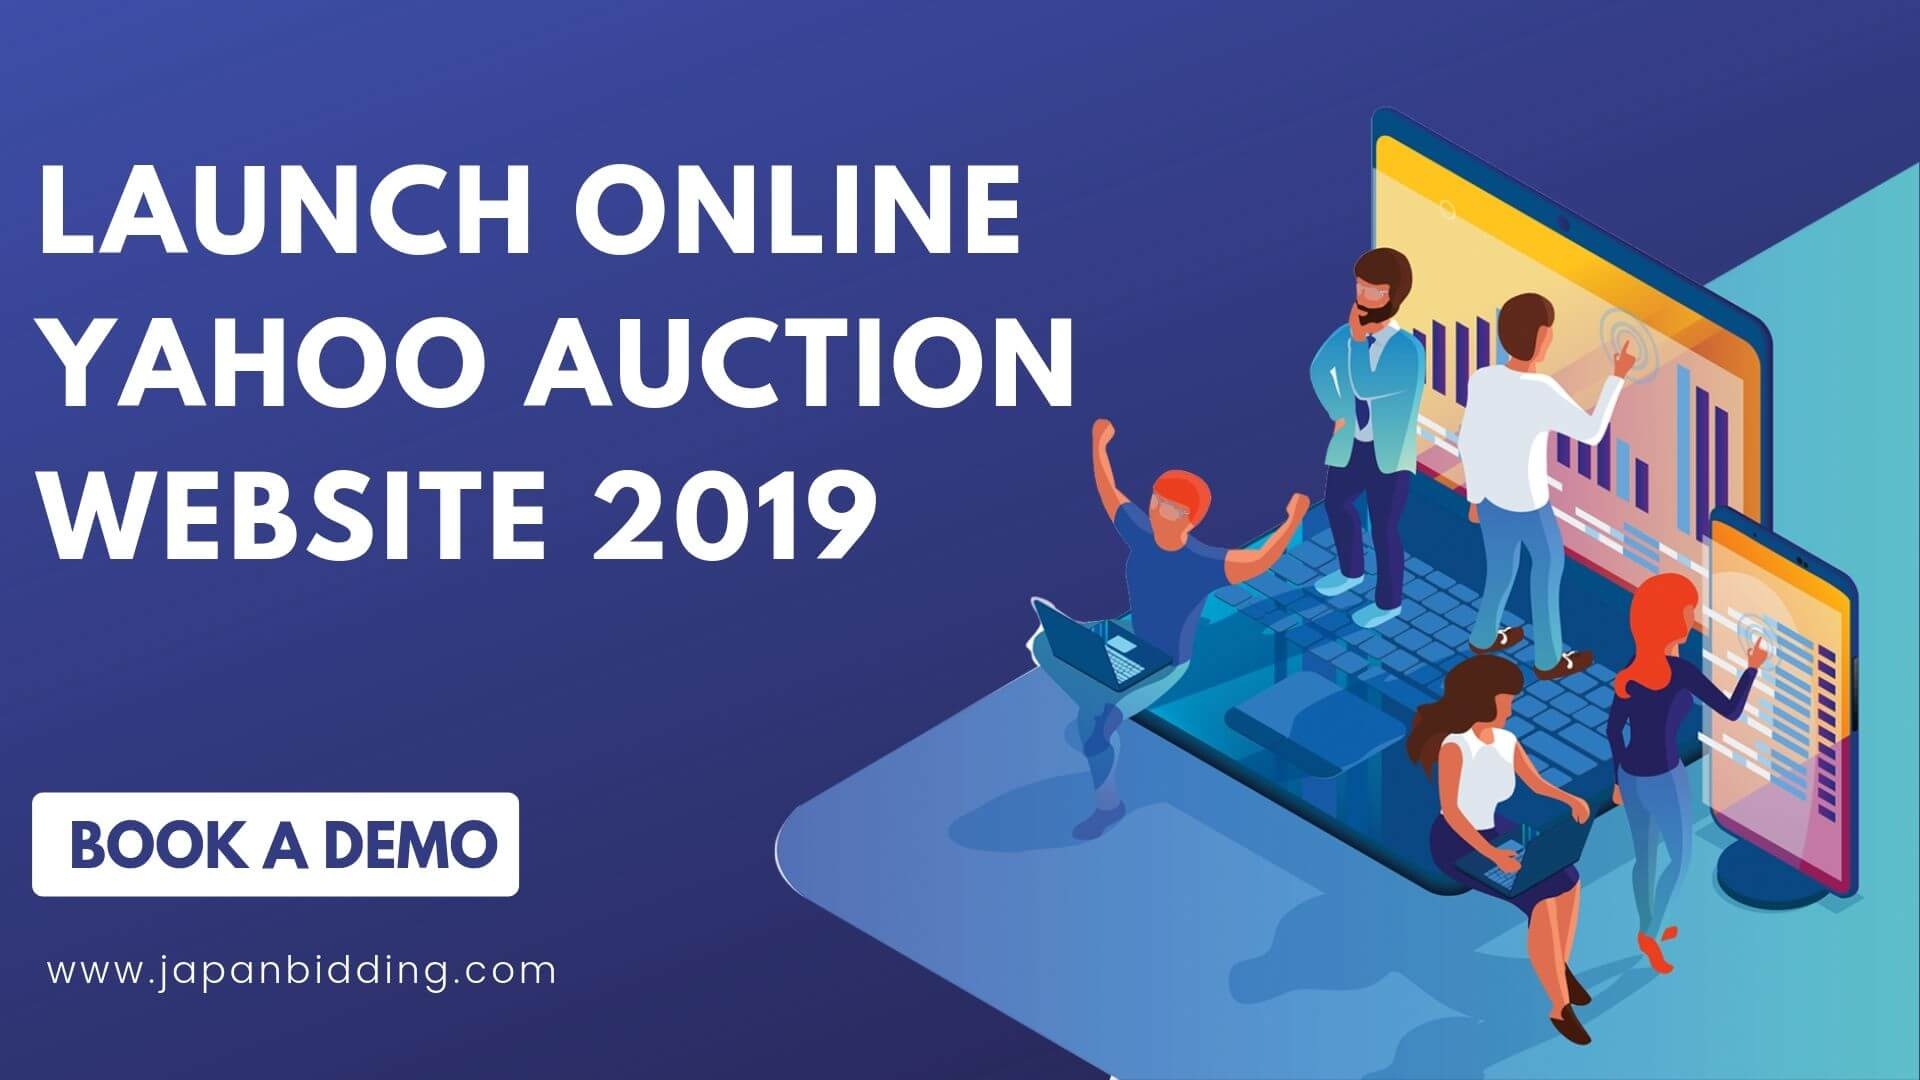 Launch Your Online Yahoo Auction Website 2019